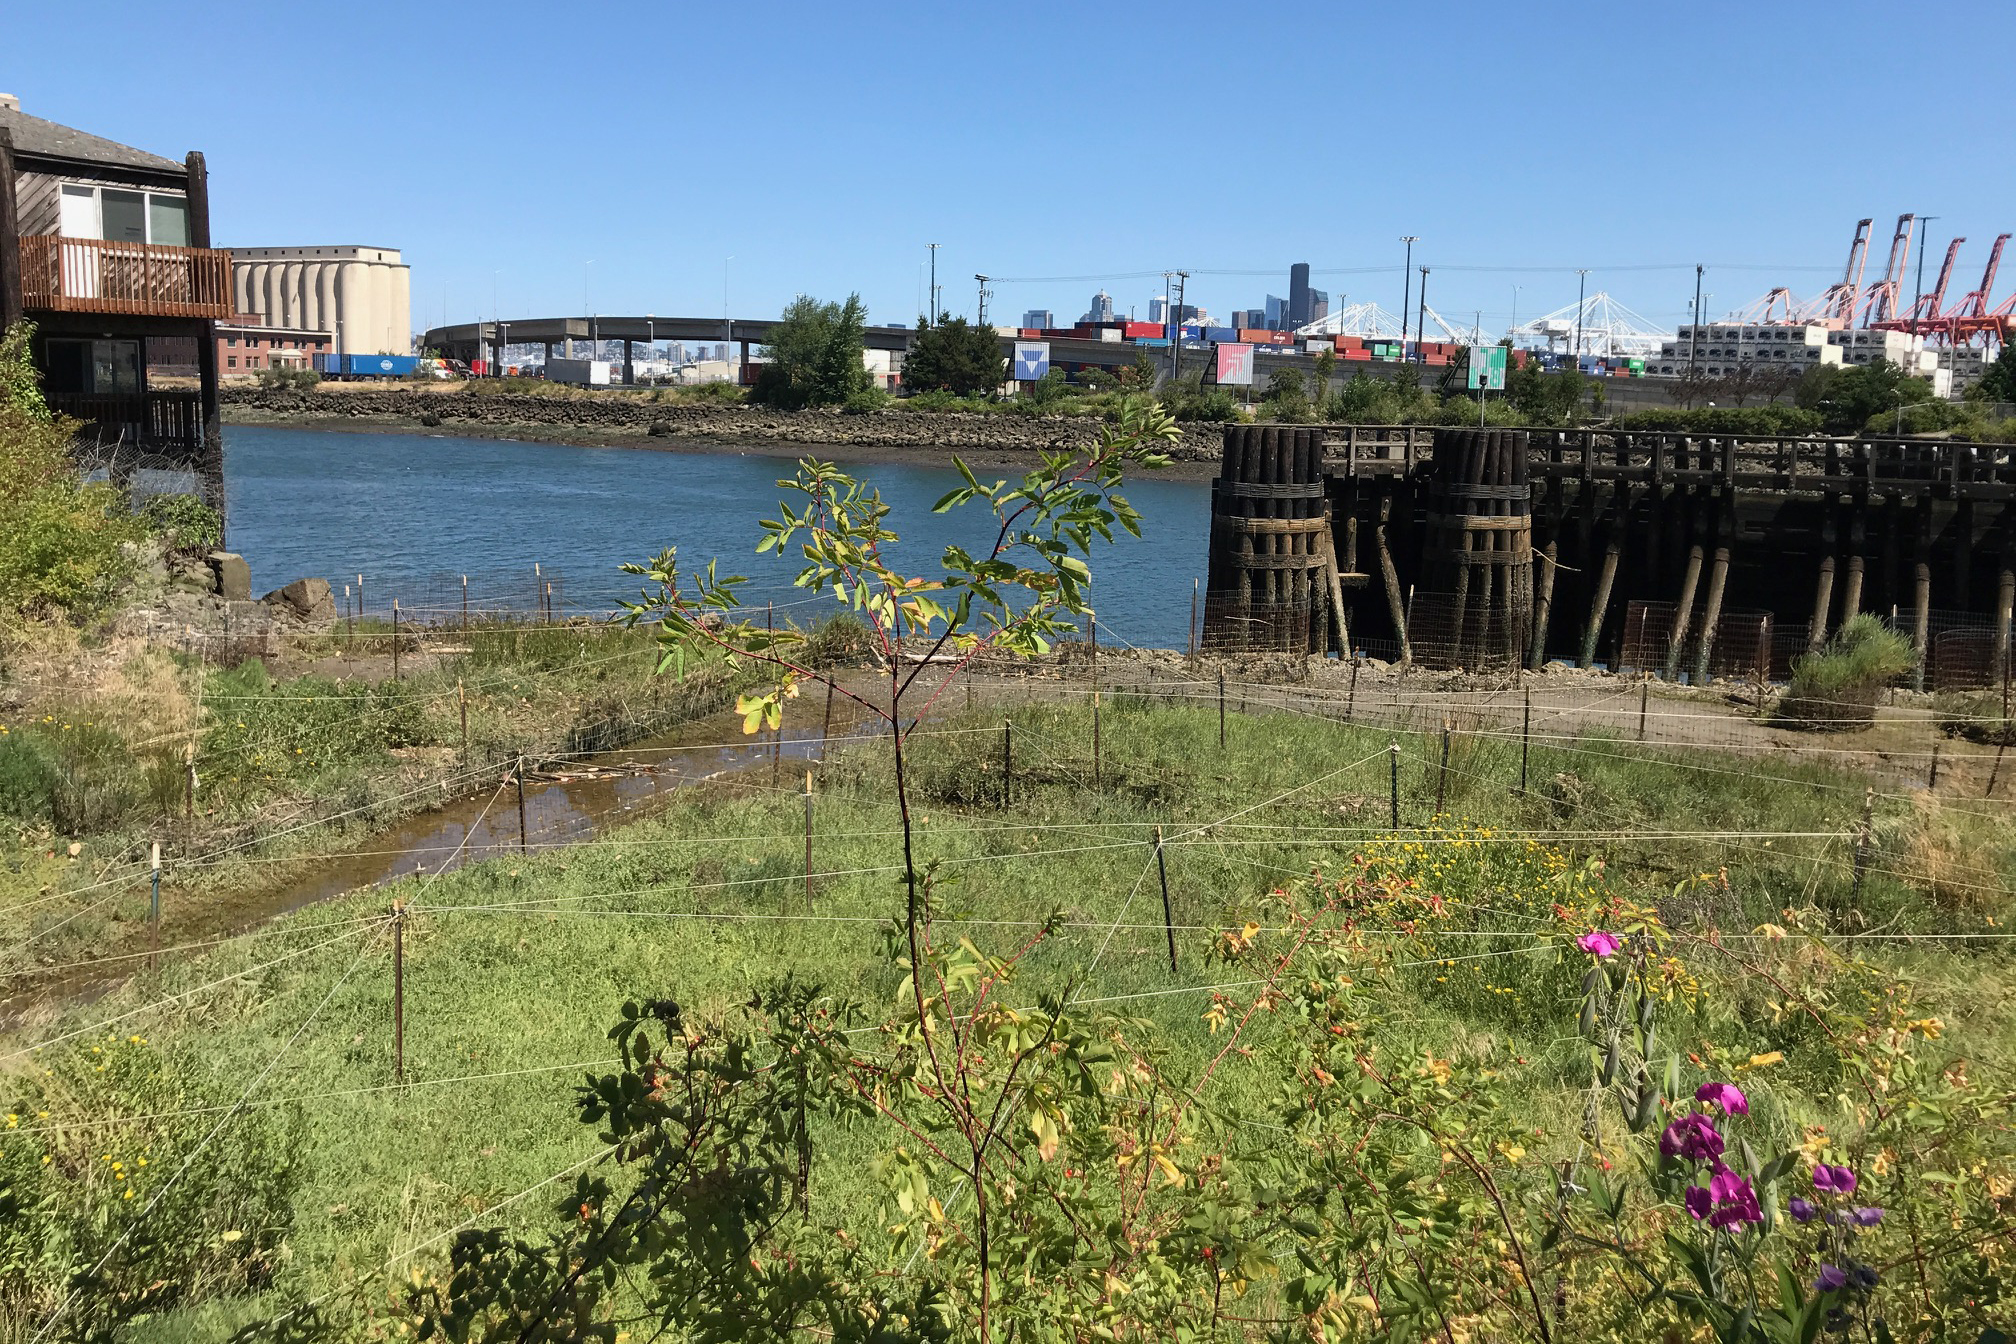 Lower Duwamish River bank where the Bluefield Holding's restoration site is located. Image: USFWS